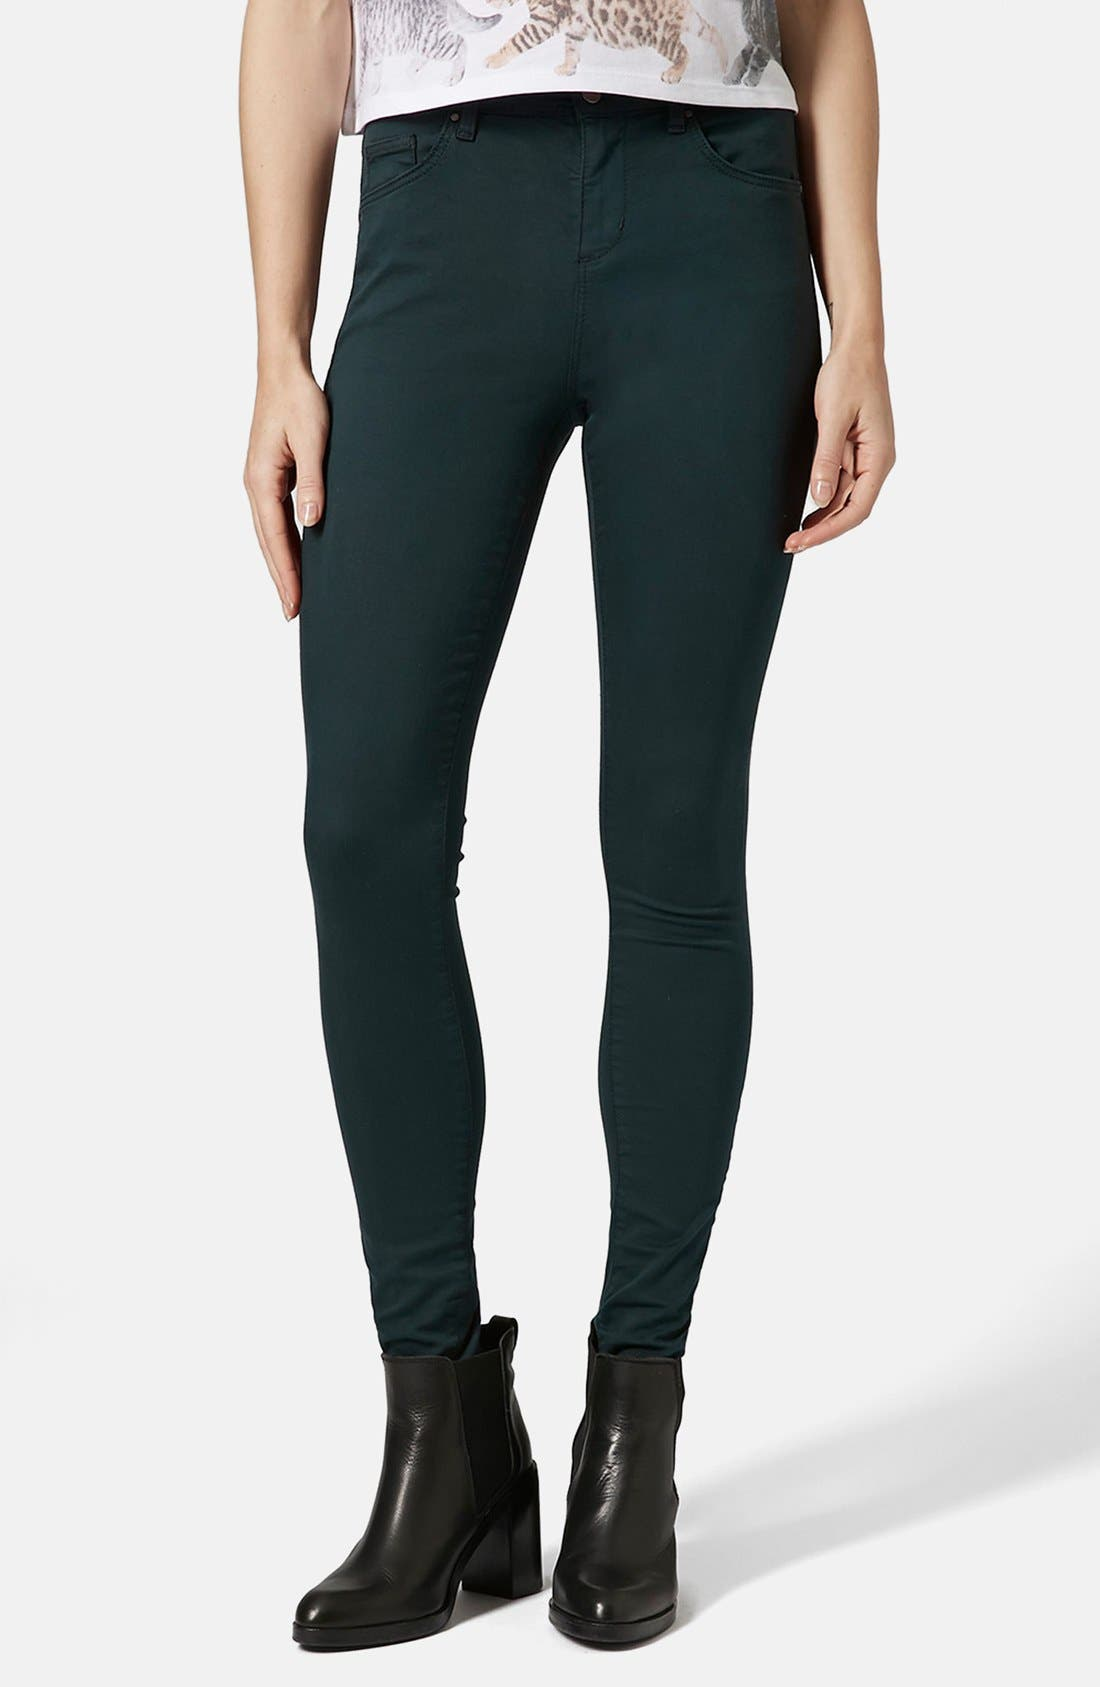 Alternate Image 1 Selected - Topshop Moto 'Leigh' High Rise Skinny Jeans (Teal) (Regular & Short)